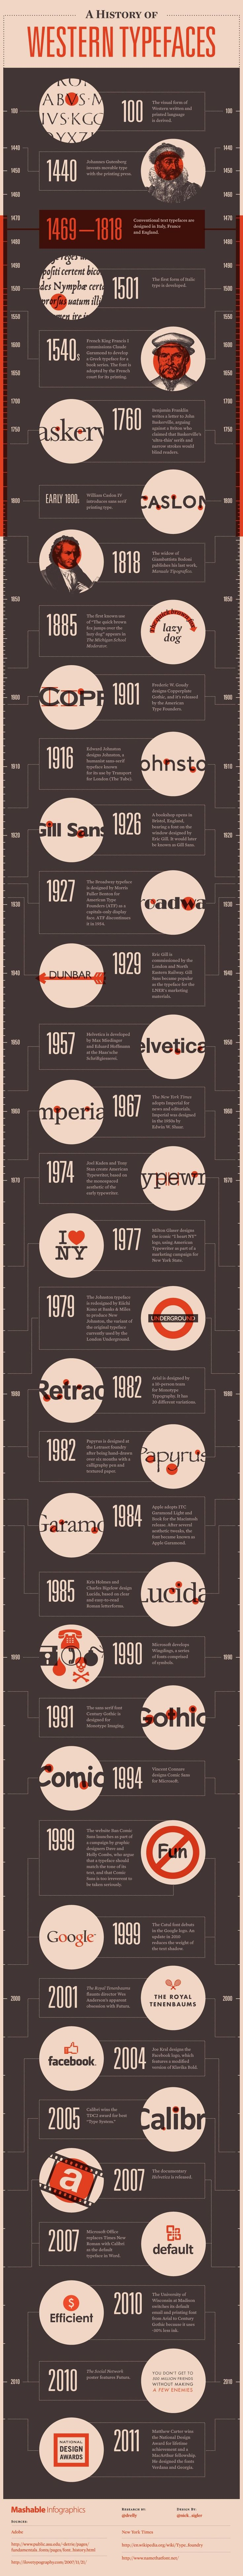 A History of Western Typefaces, infographic design by Nickolas Sigler. http://nicksigler.com/